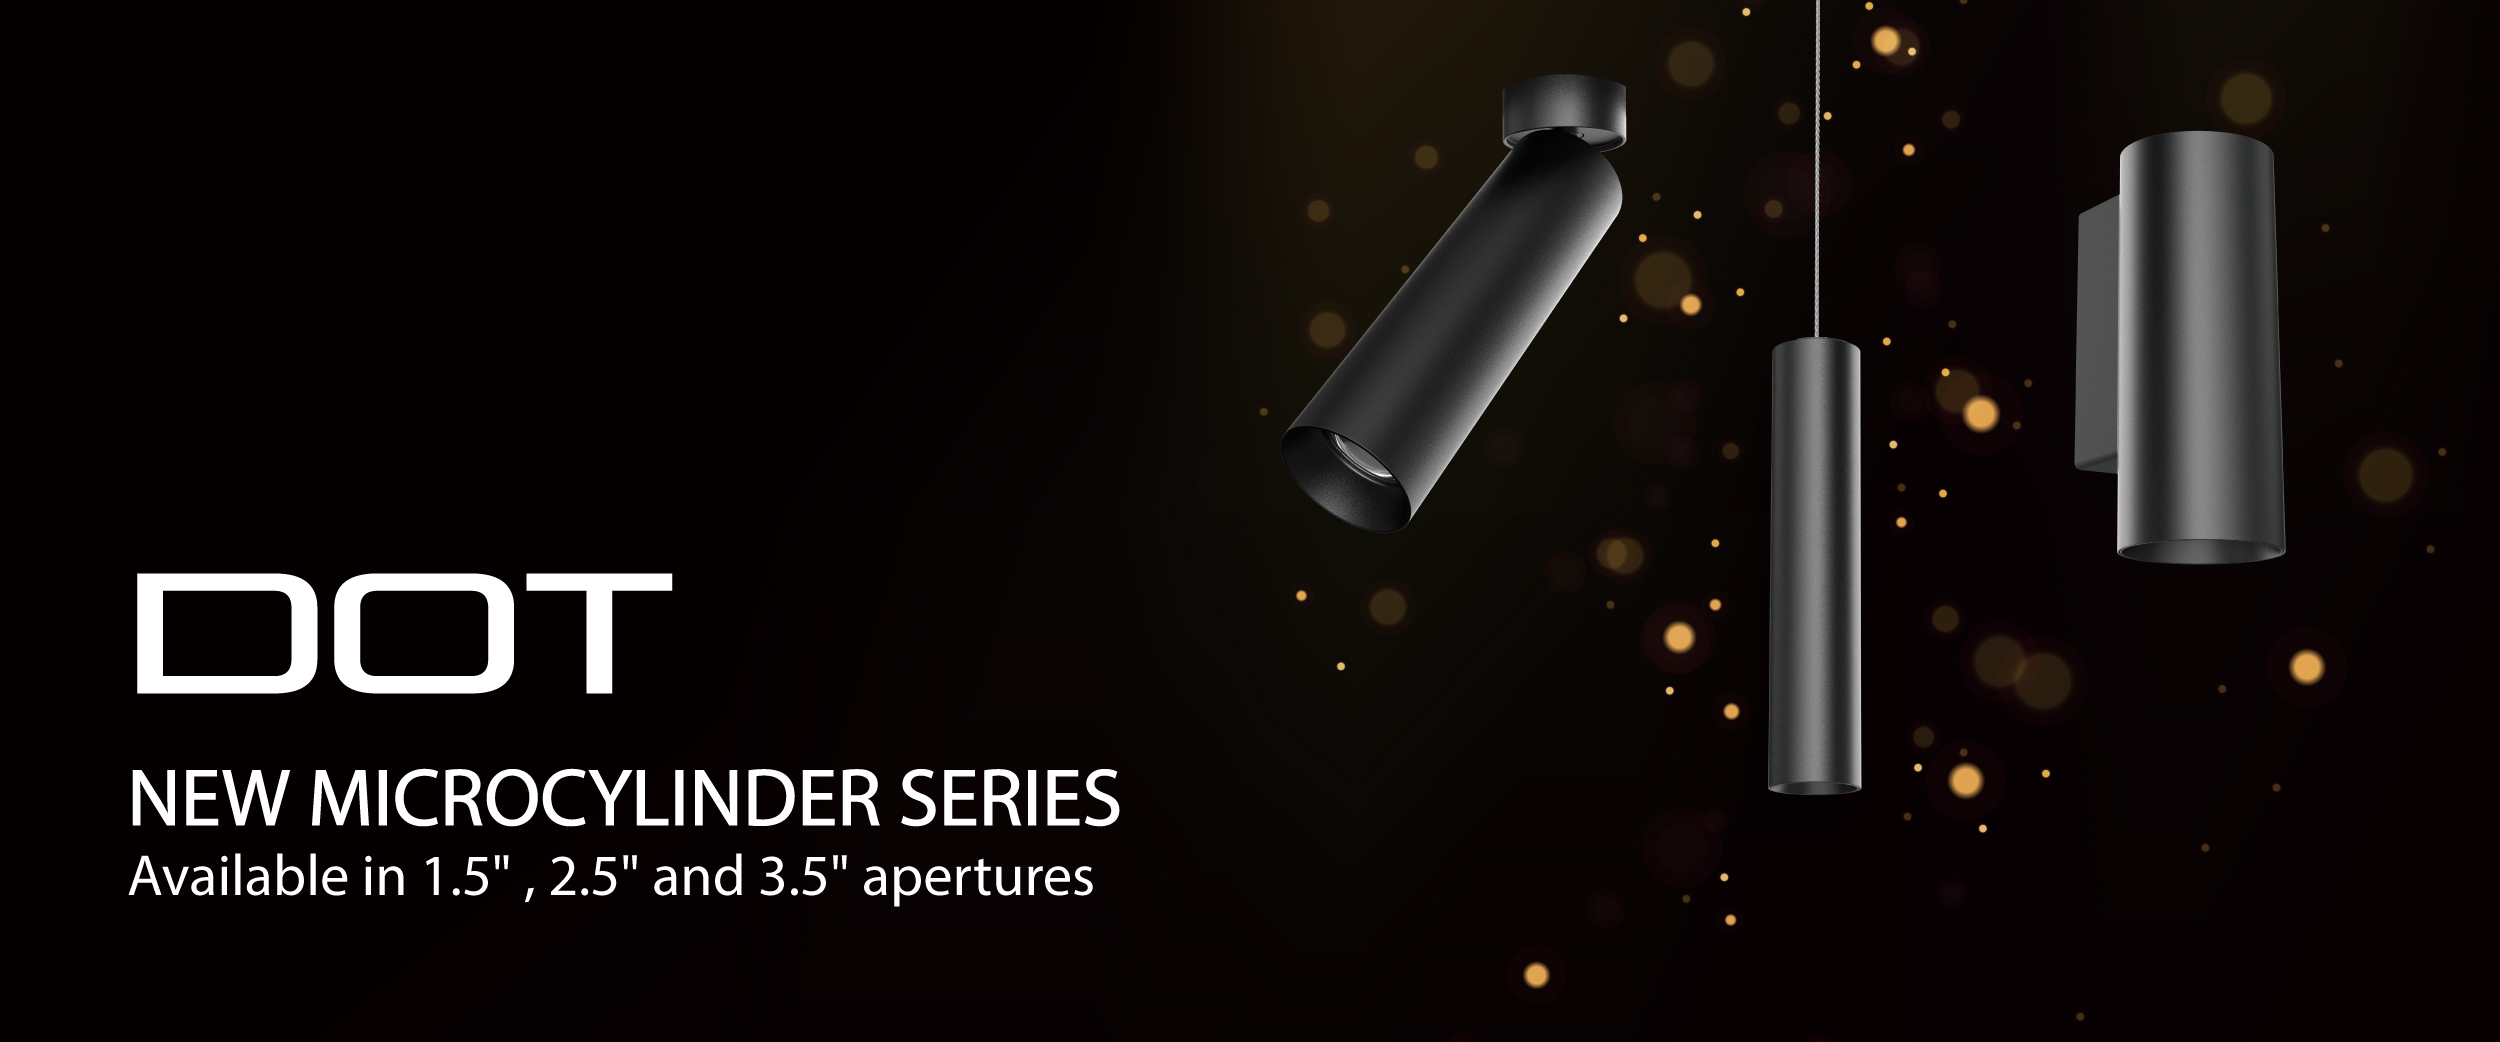 DOT 1.5 MICROCYLINDER SERIES FROM METEOR LIGHTING